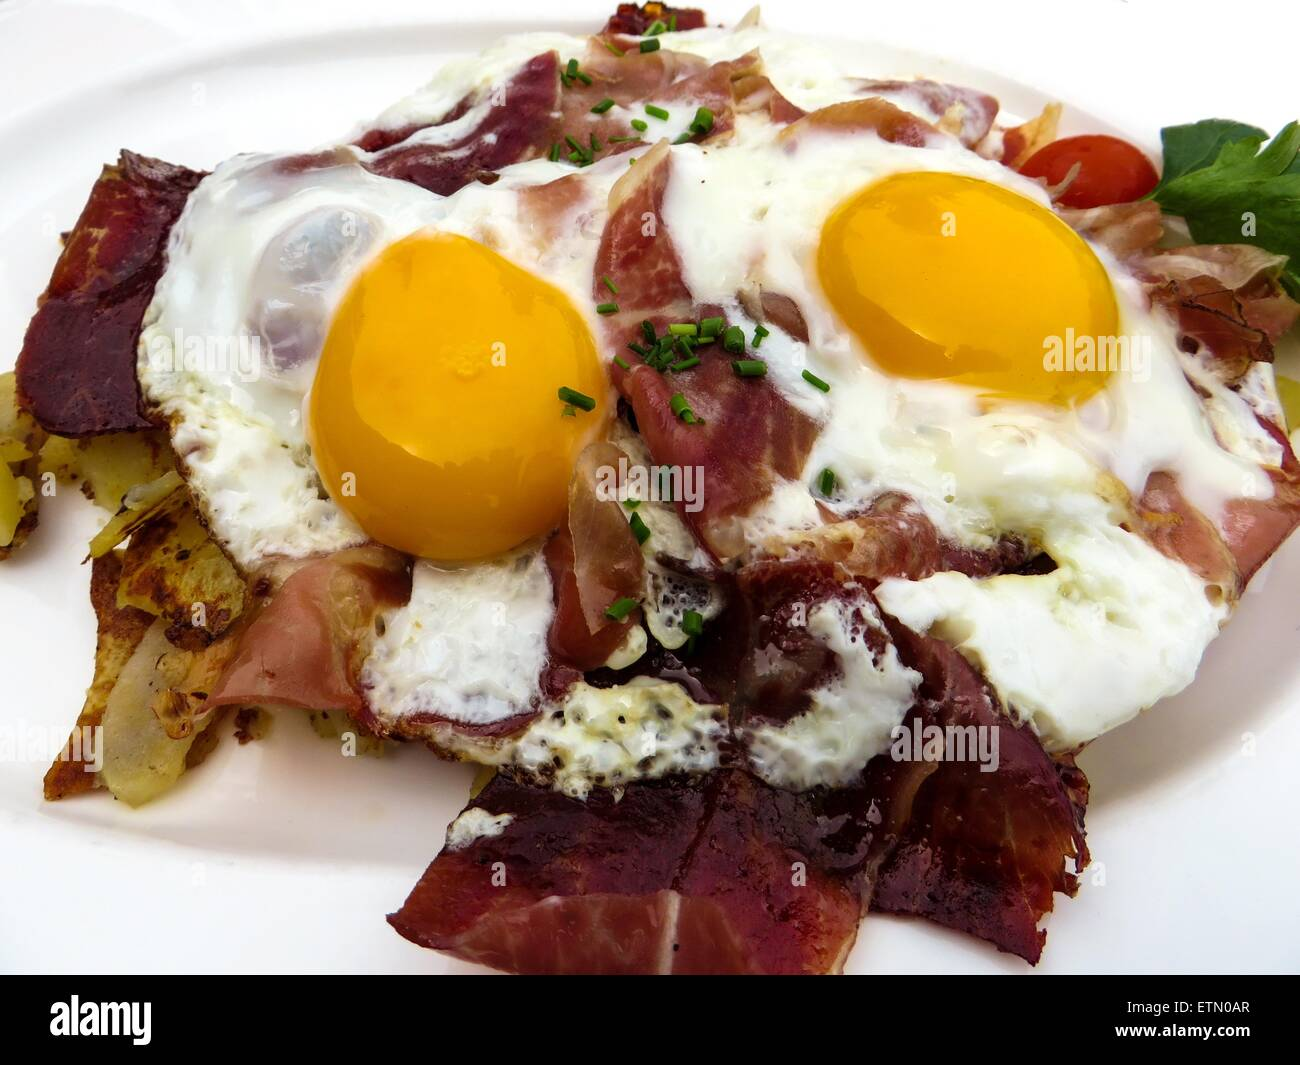 Sunny side up fried eggs - Stock Image